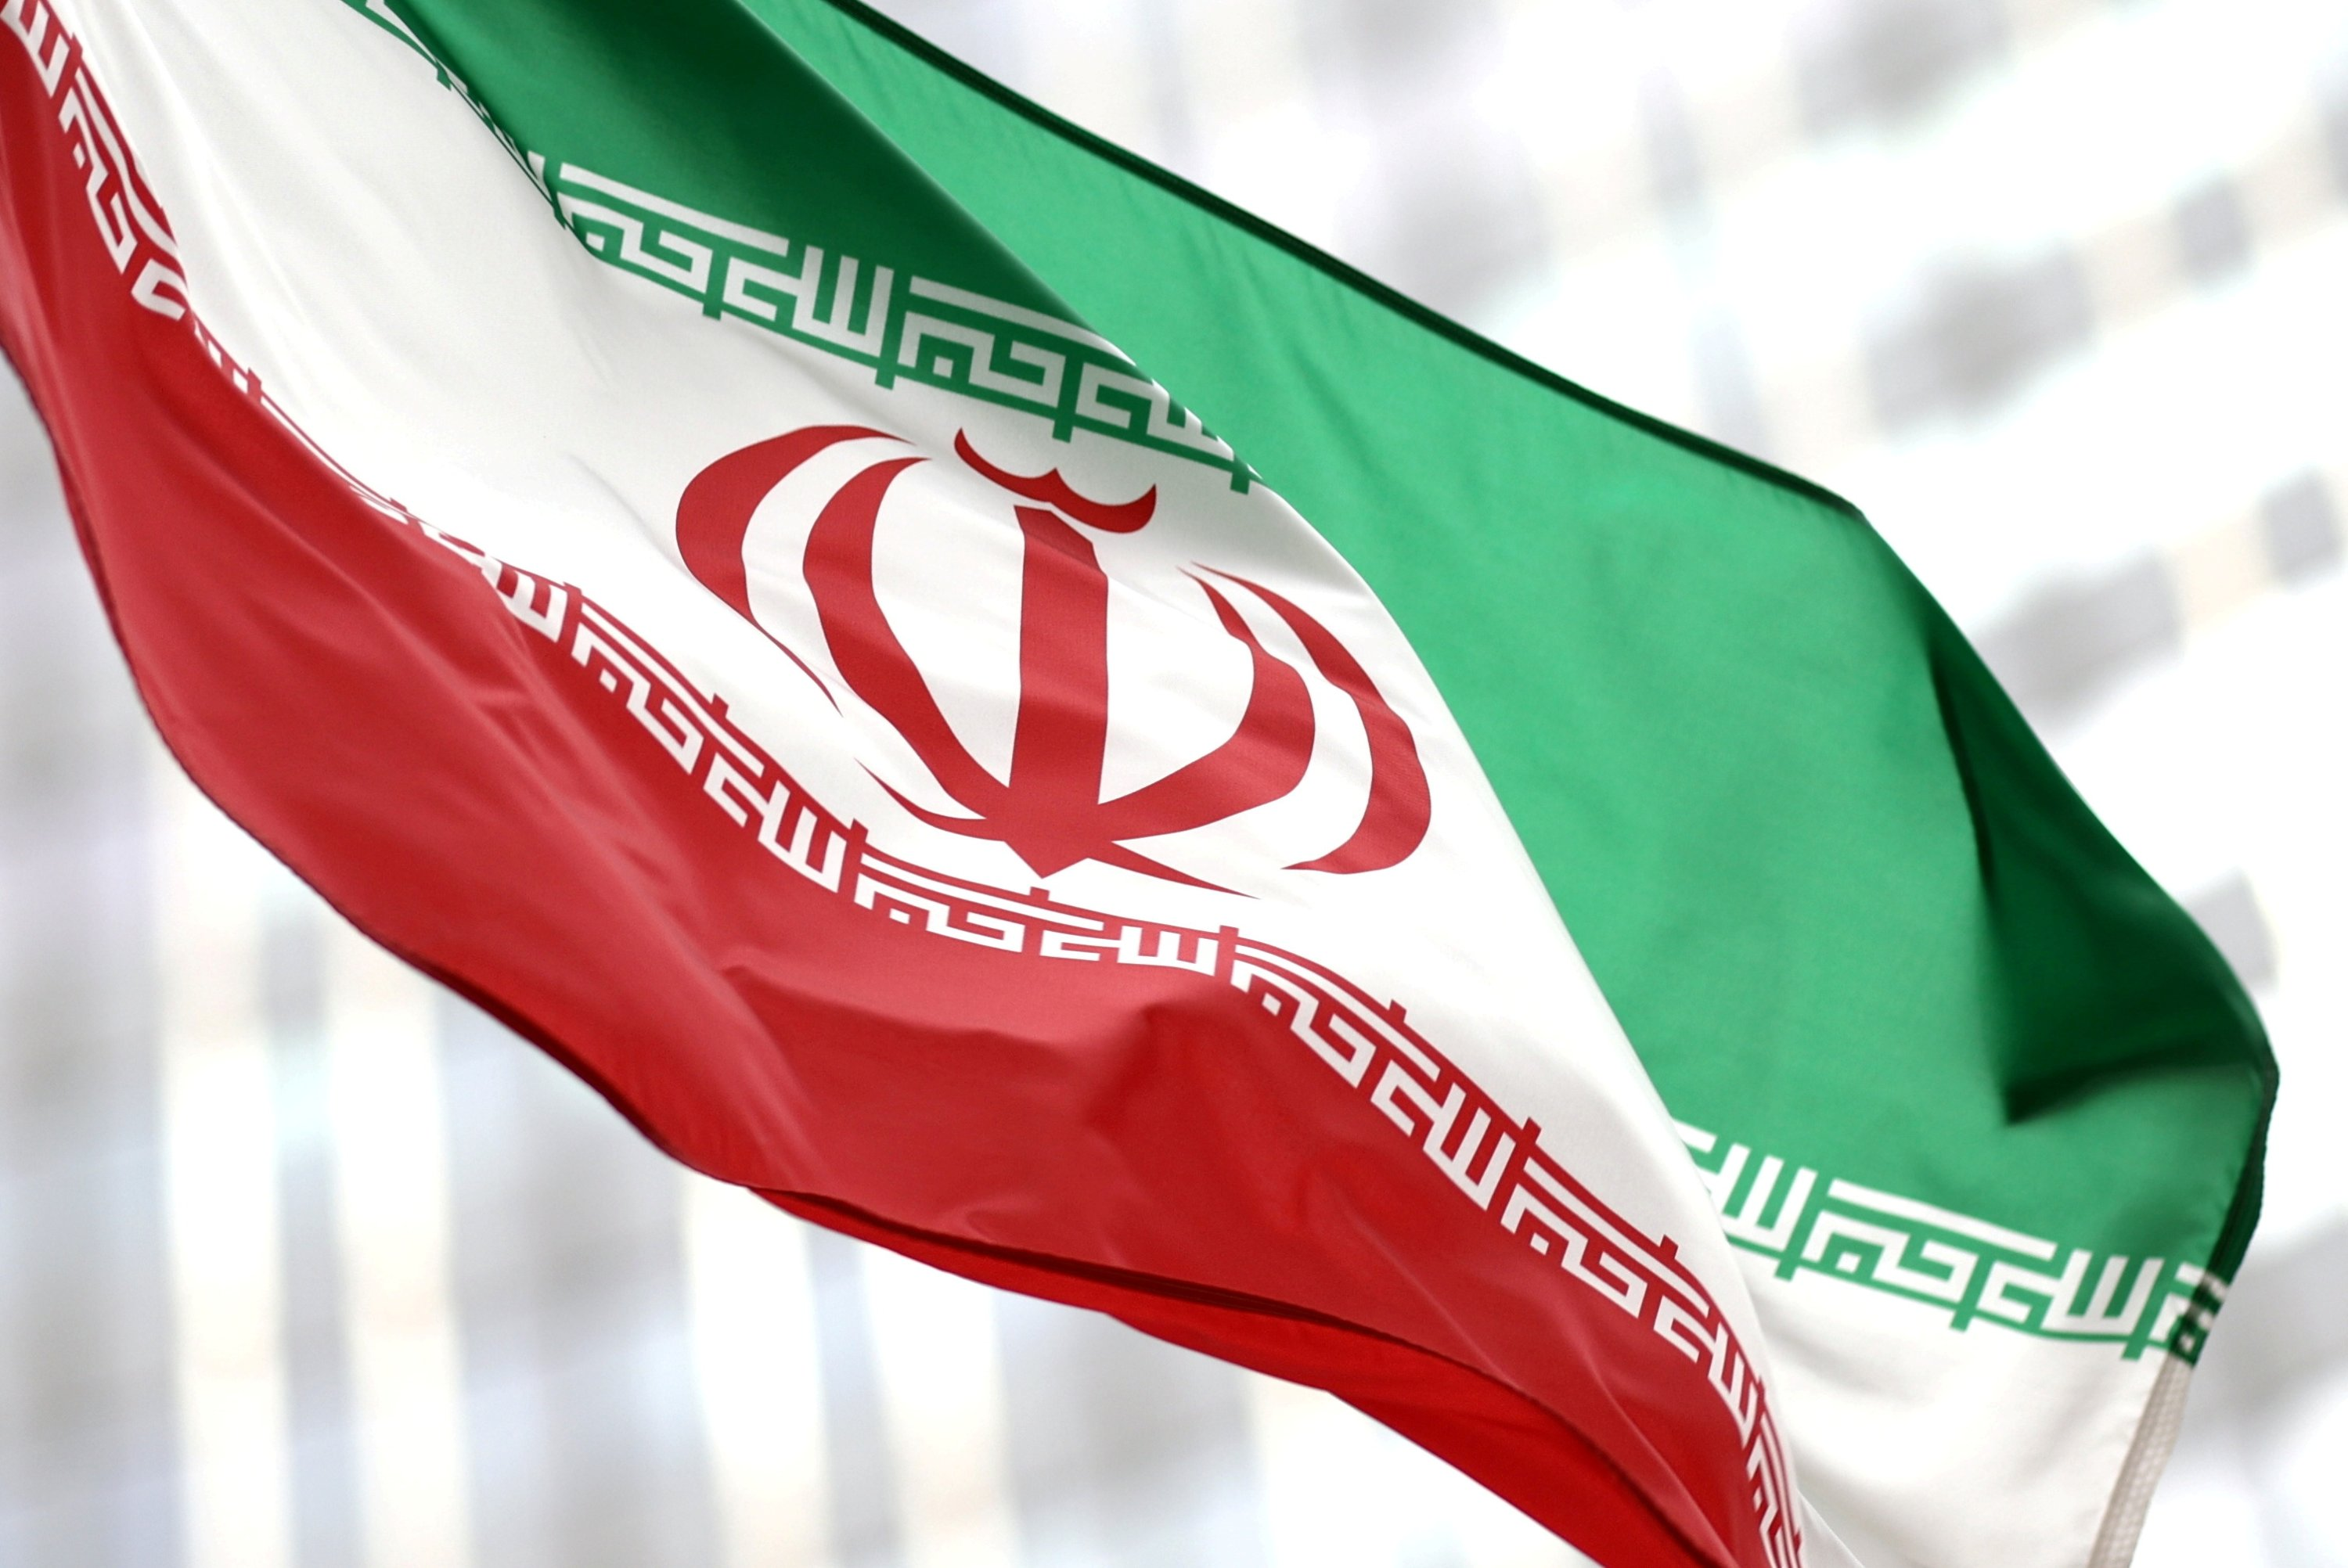 Iranian flag flies in front of the U.N. office building, housing IAEA headquarters, amid the COVID-19 pandemic, in Vienna, Austria, May 24, 2021. (REUTERS Photo)